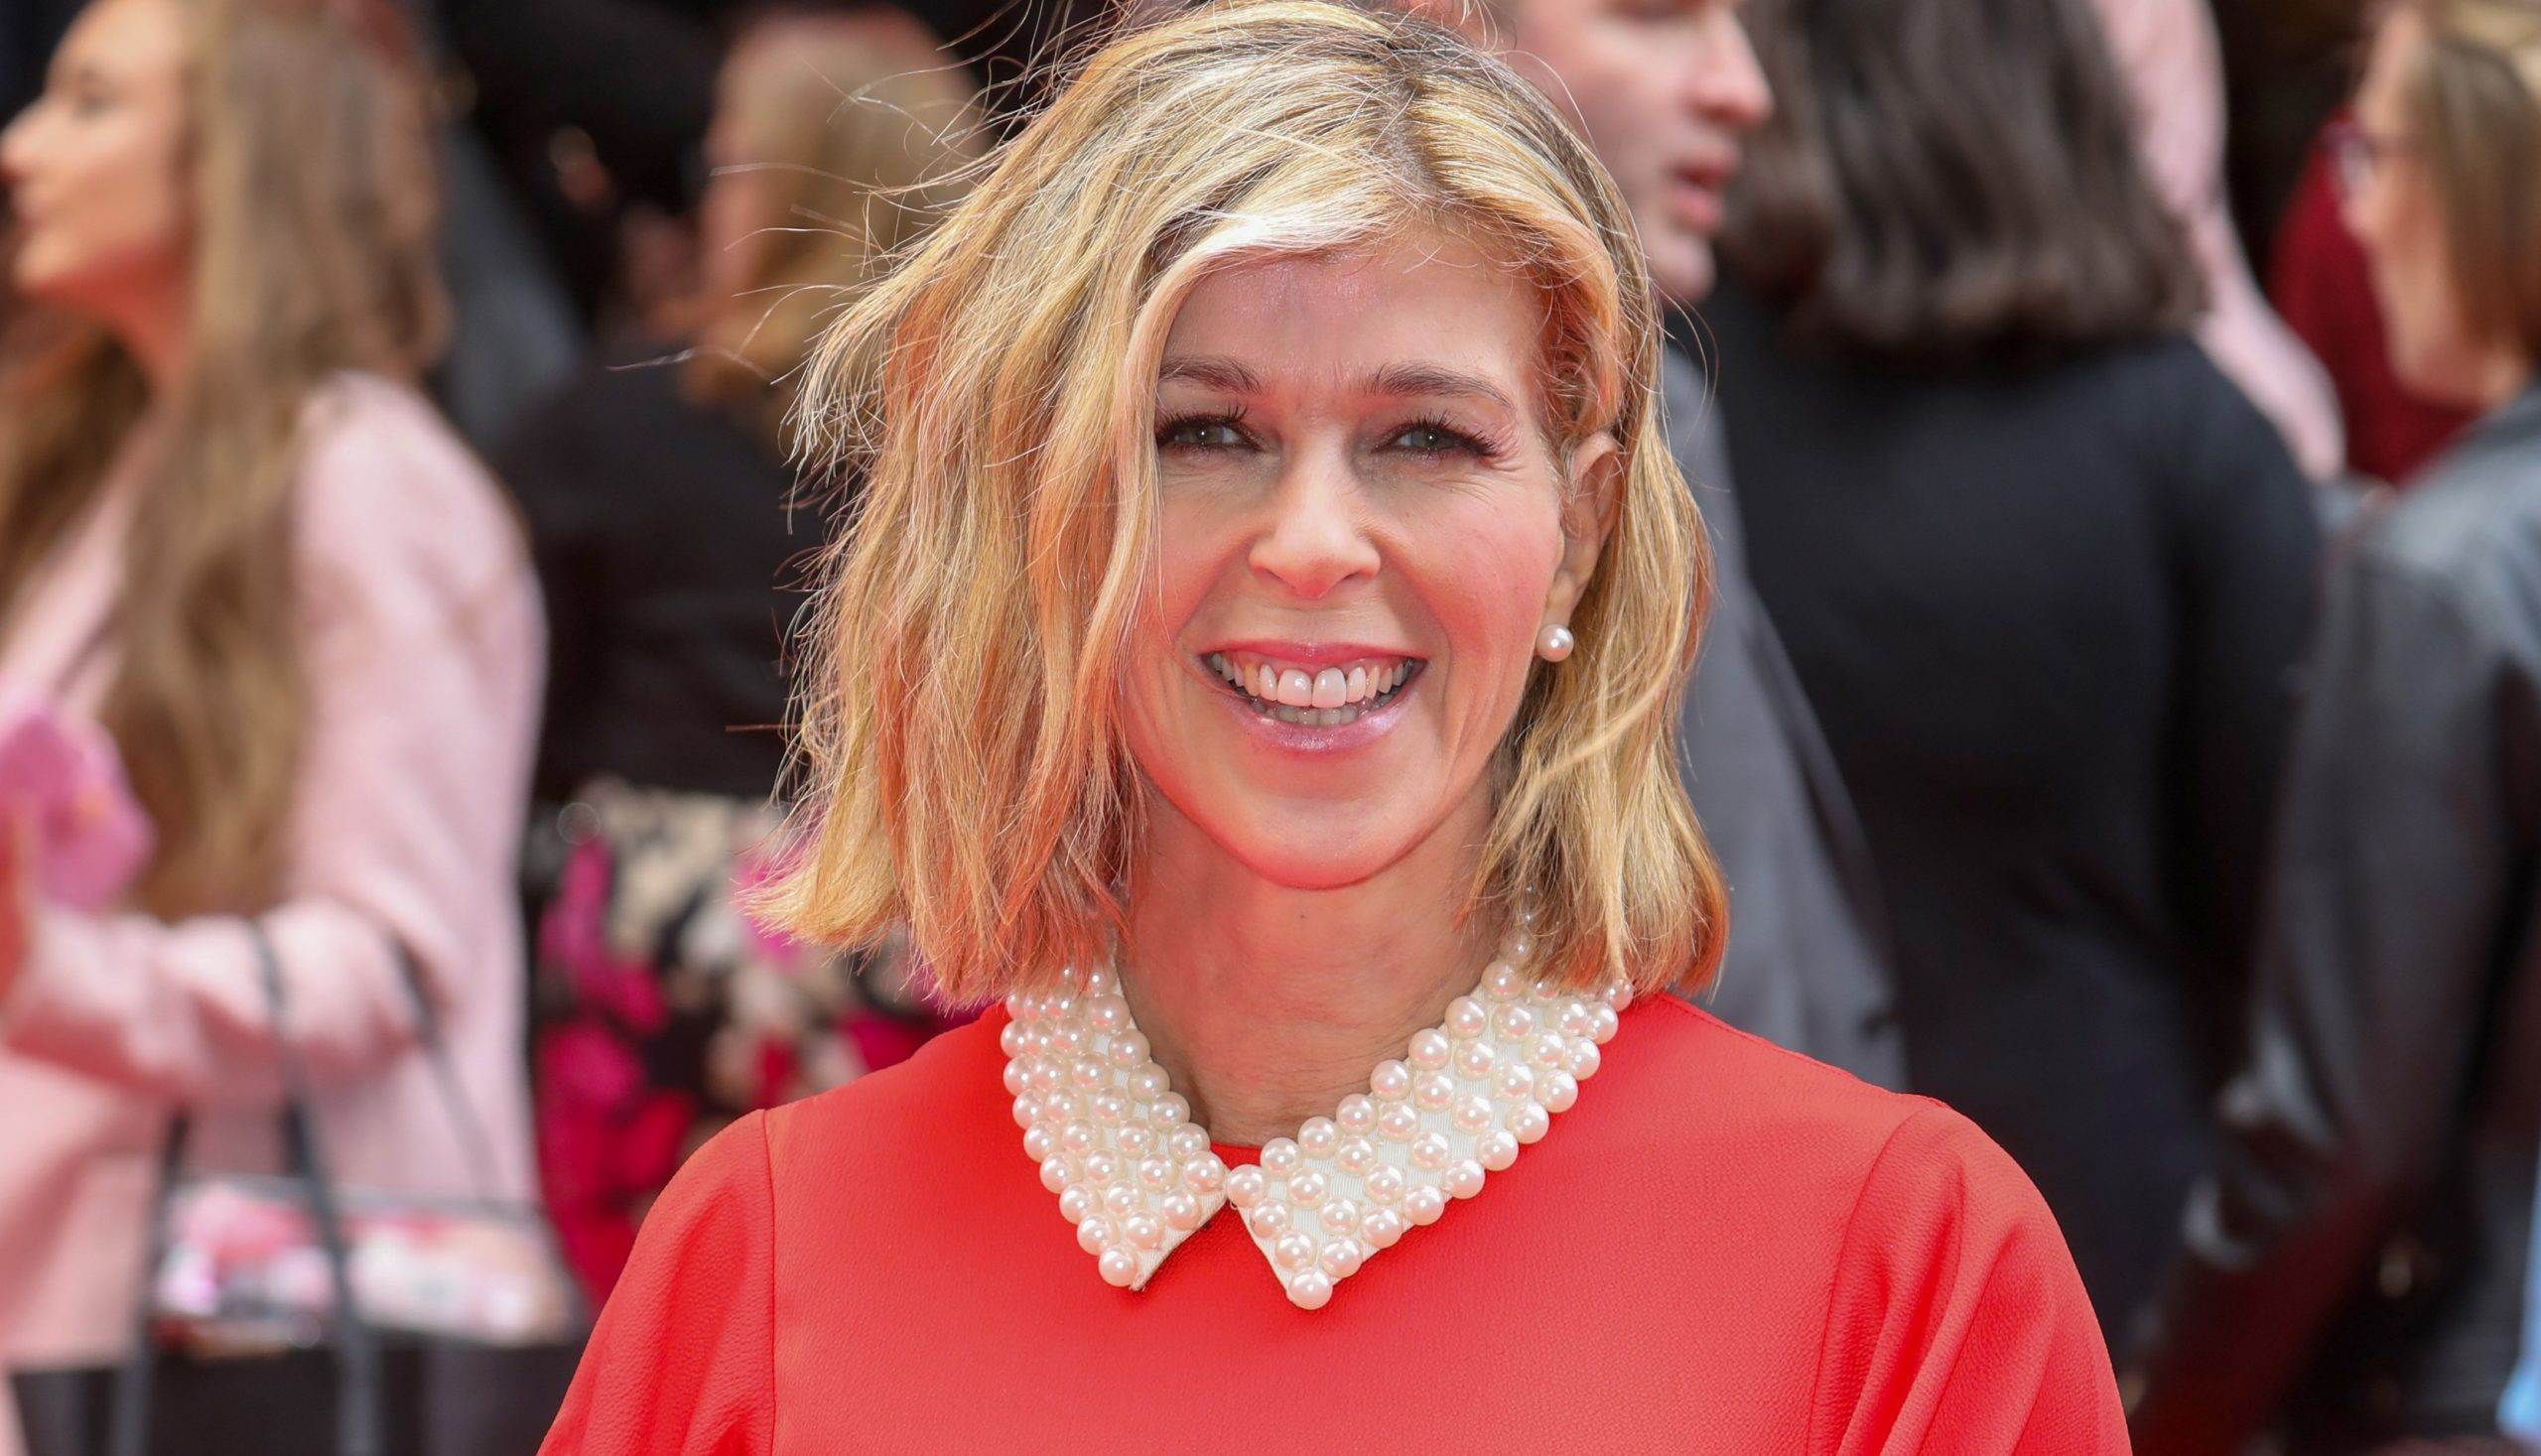 Kate Garraway 'given hope' by coronavirus survival stories as husband battles illness